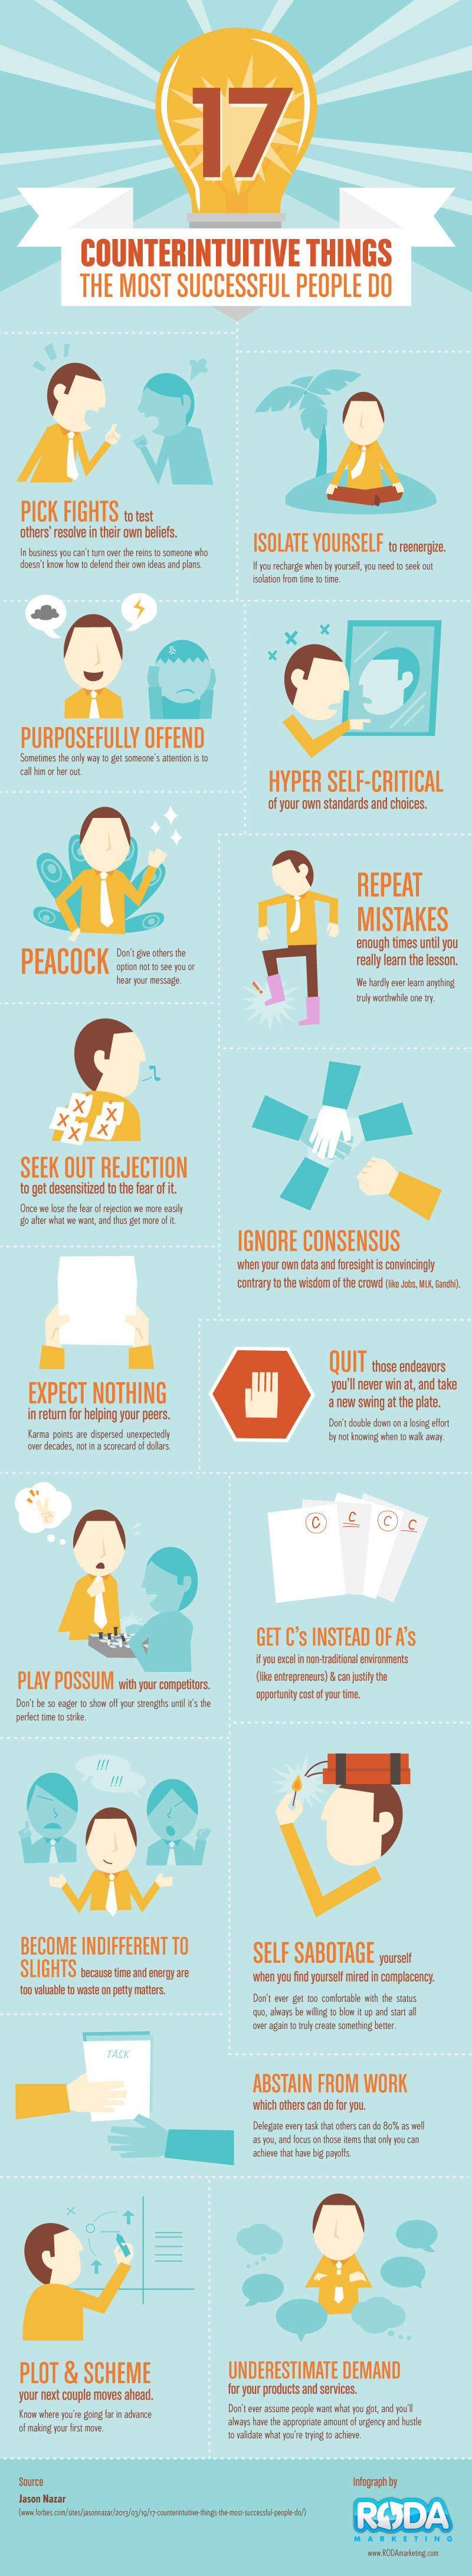 17 Counterintuitive things successful people do!